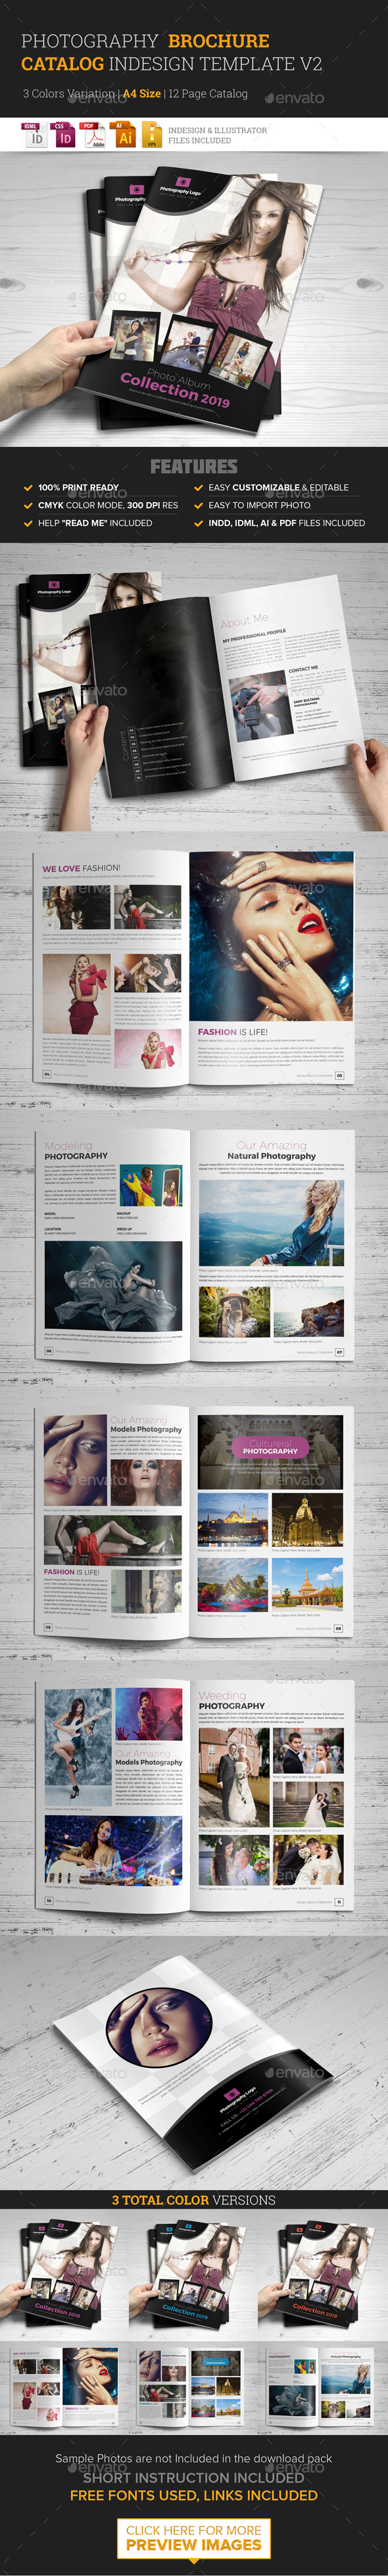 Photography Brochure Catalog InDesign Template v2 - Corporate Brochures